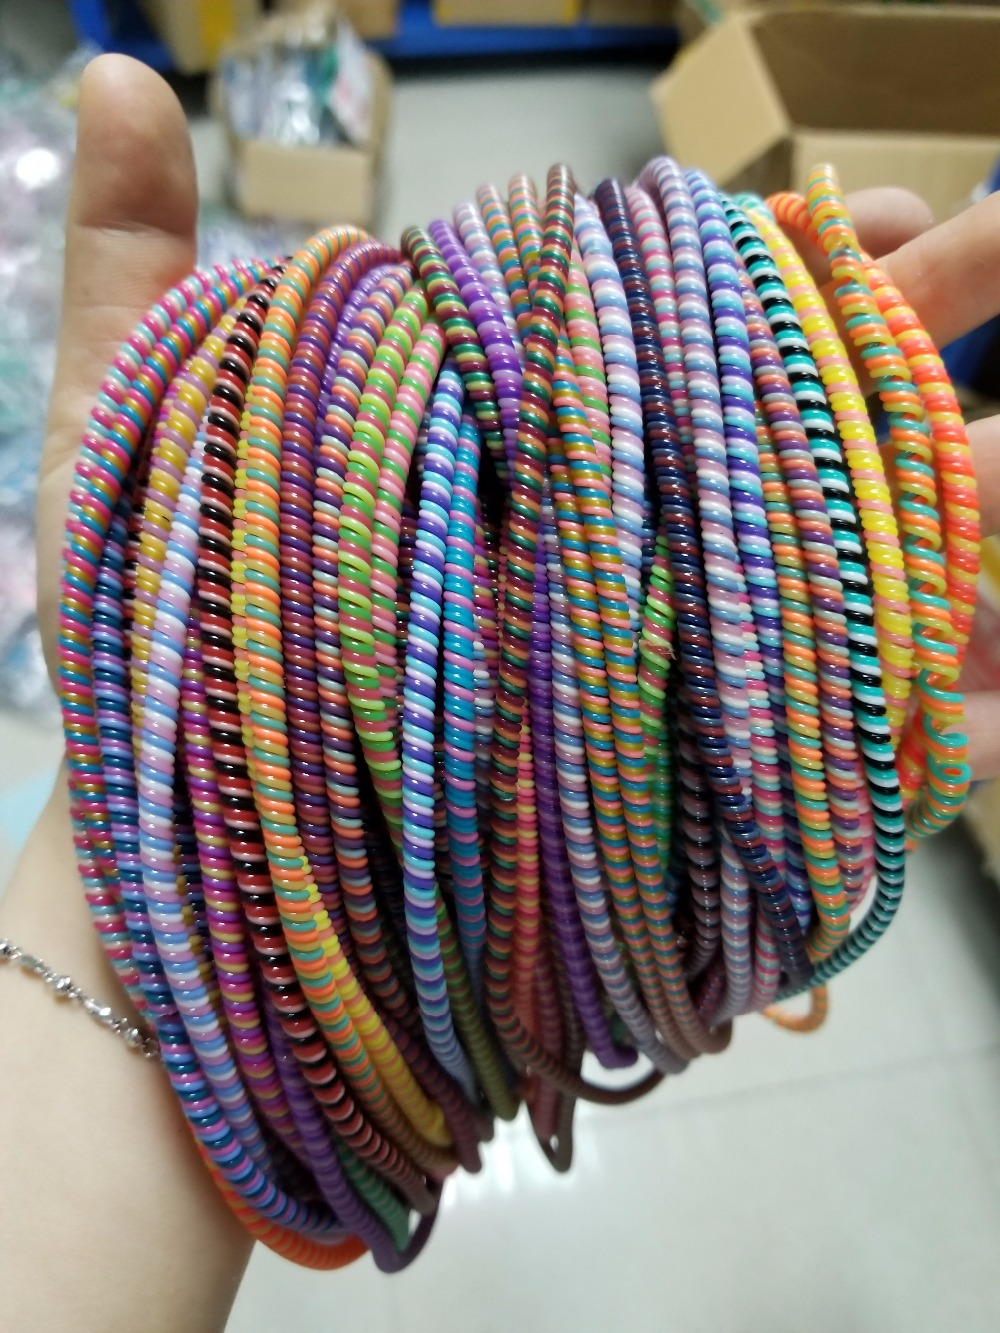 5pcs/lot three colors Solid Color TPU spiral USB Charger cable cord protector wrap cable winder organizer, Hair ring